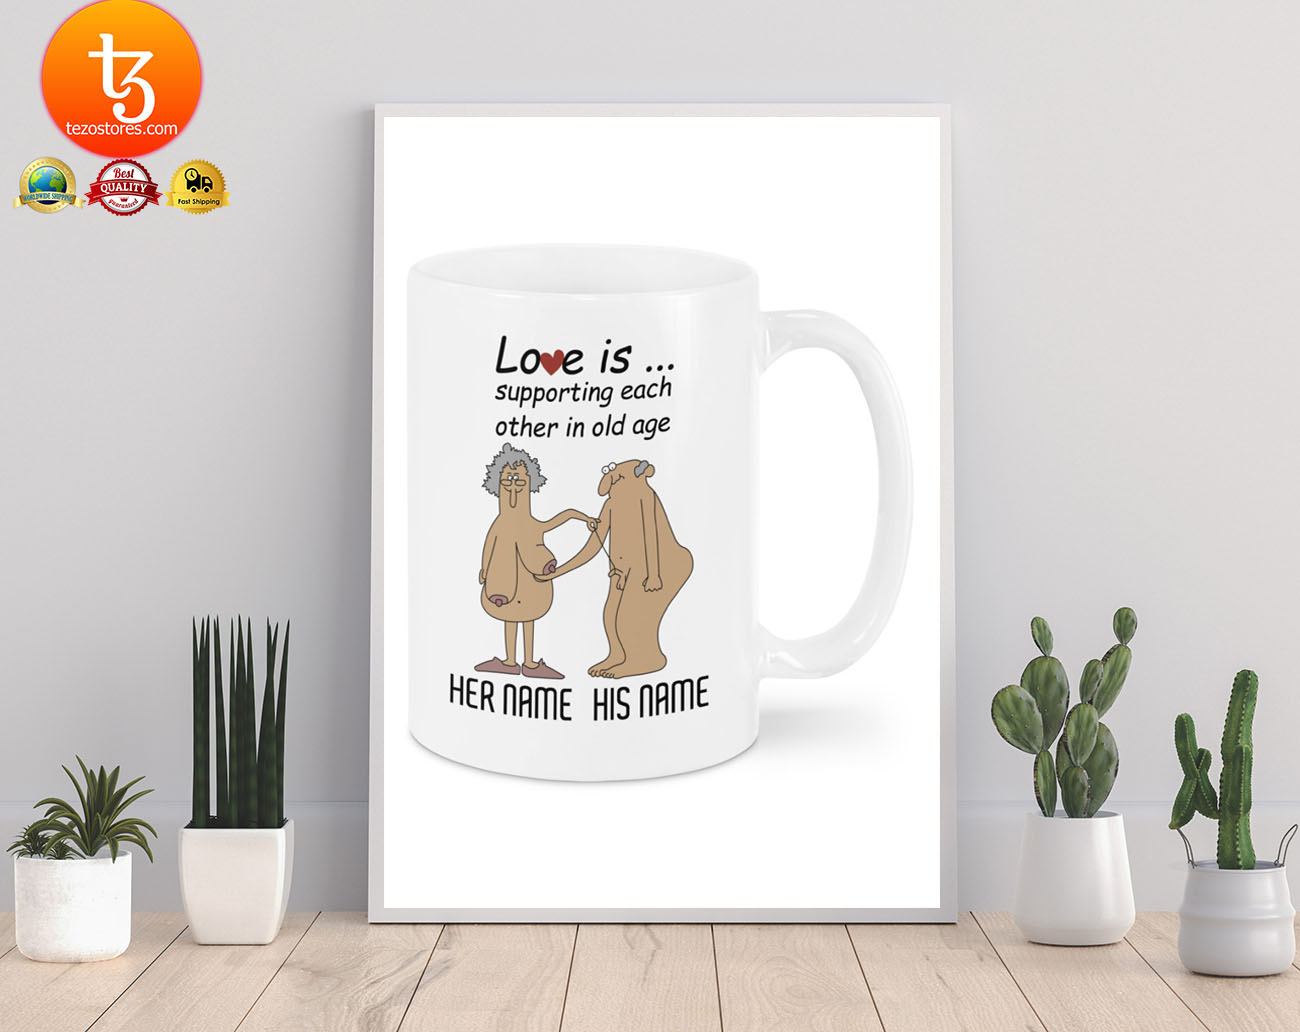 Love is supporting each other in old age custom personalized name mug 19